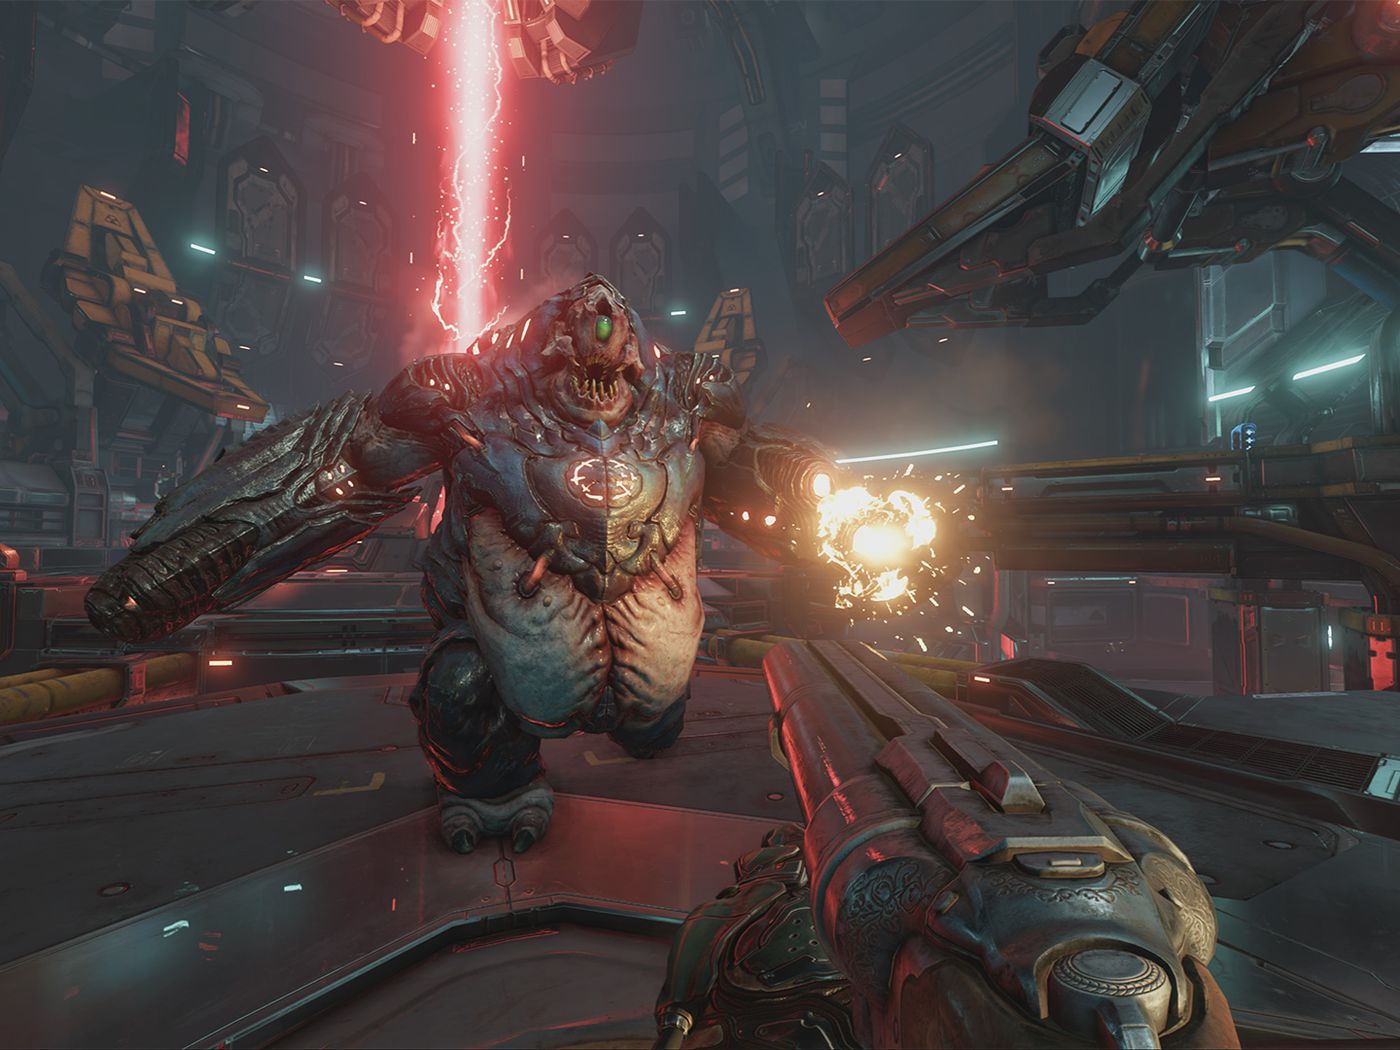 Doom gets 4K patches for Xbox One X and PS4 Pro - Polygon